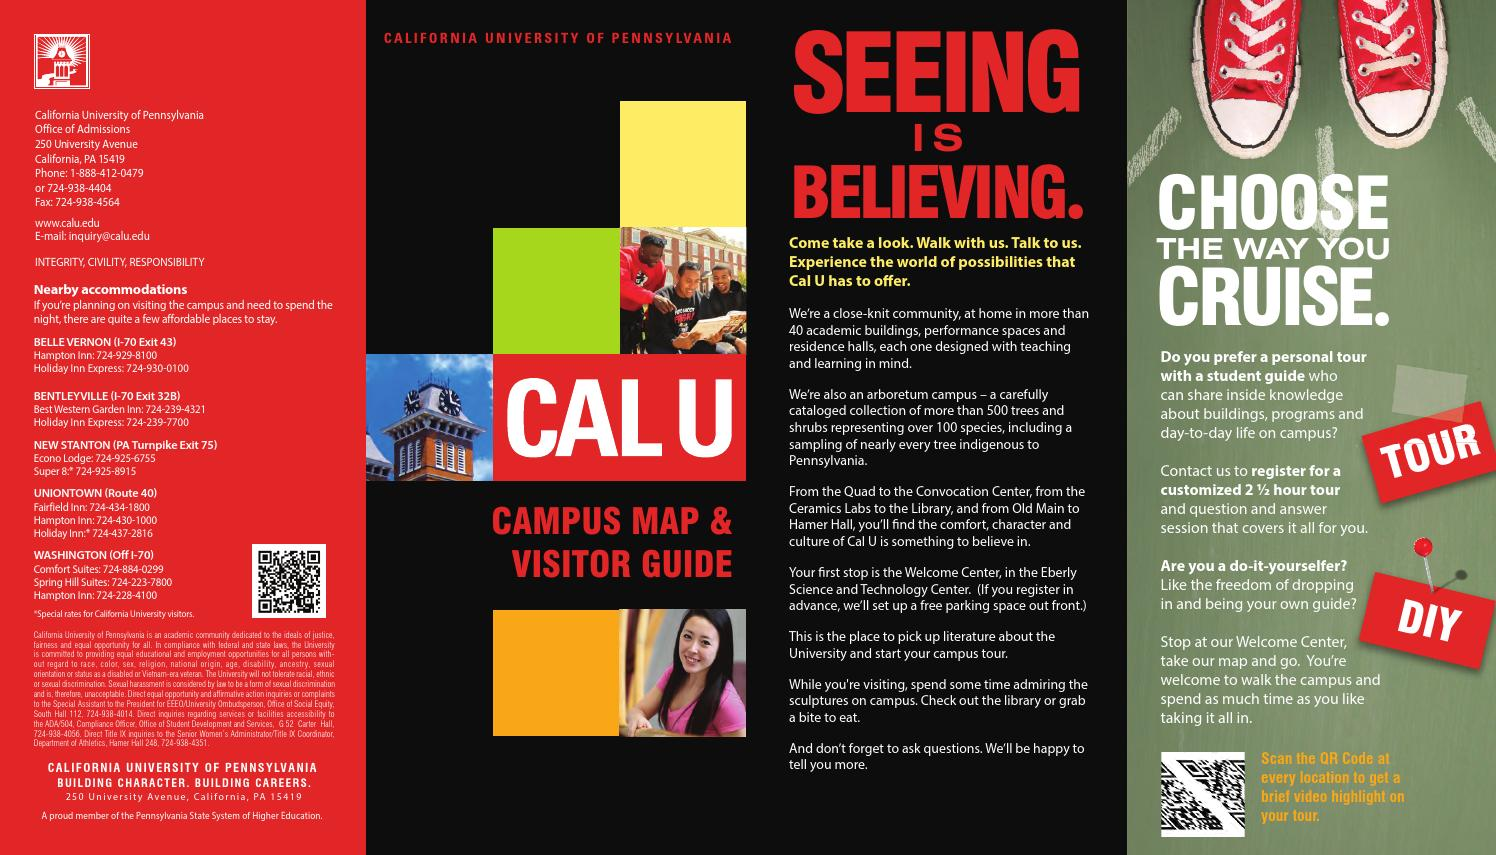 California University Of Pa Campus Map.Campus Map By California University Of Pennsylvania Issuu